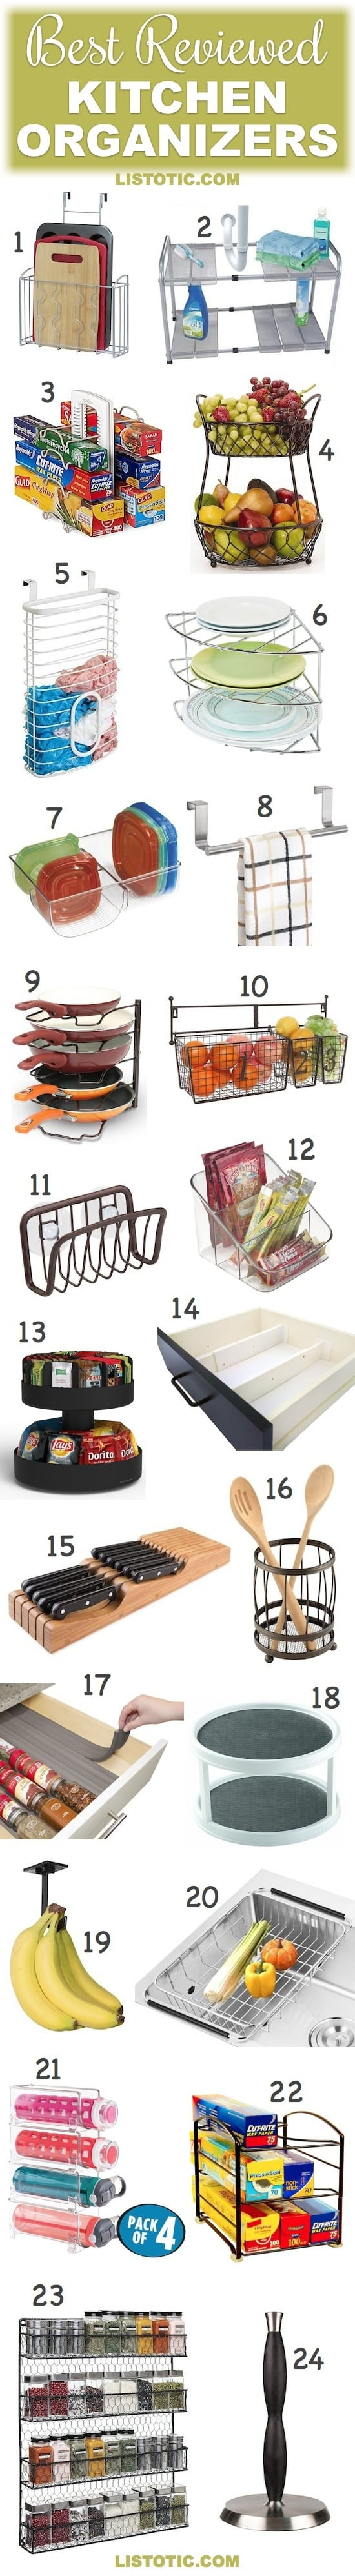 Kitchen Organization Ideas | The best reviewed kitchen organizers! These are great for the pantry, cabinets or countertops... especially for small kitchens. | Listotic